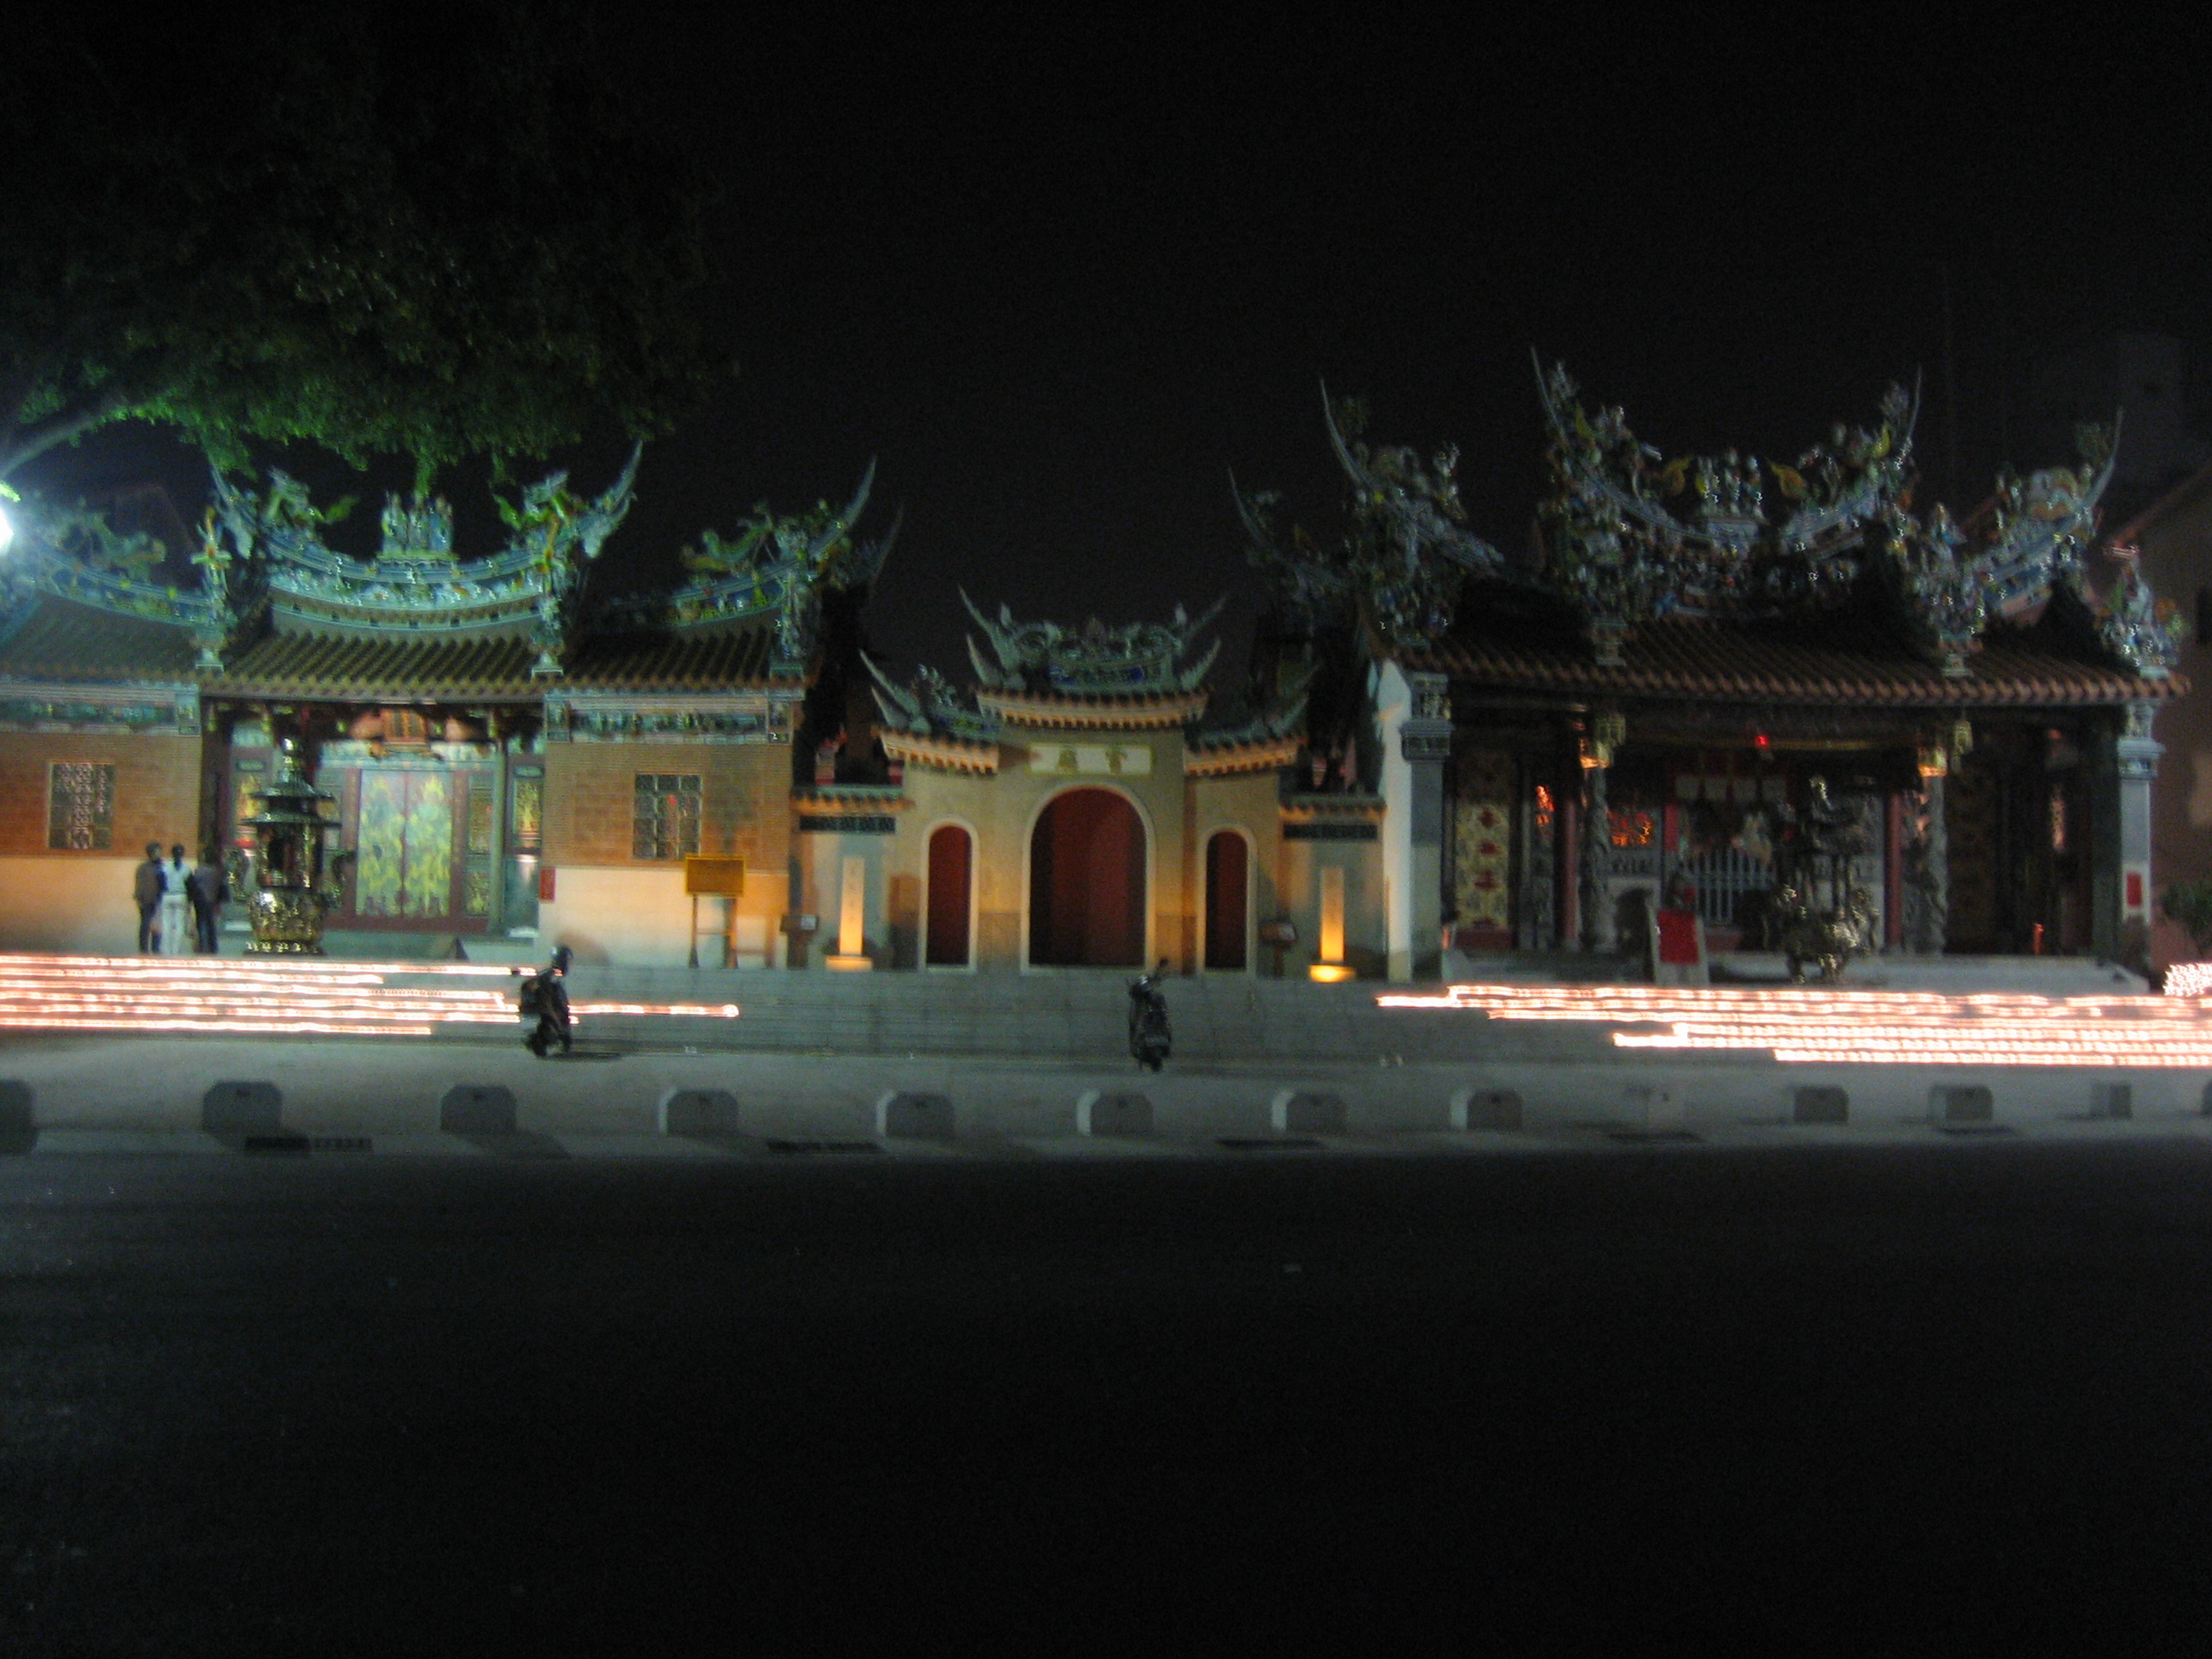 Other temples in Tainan